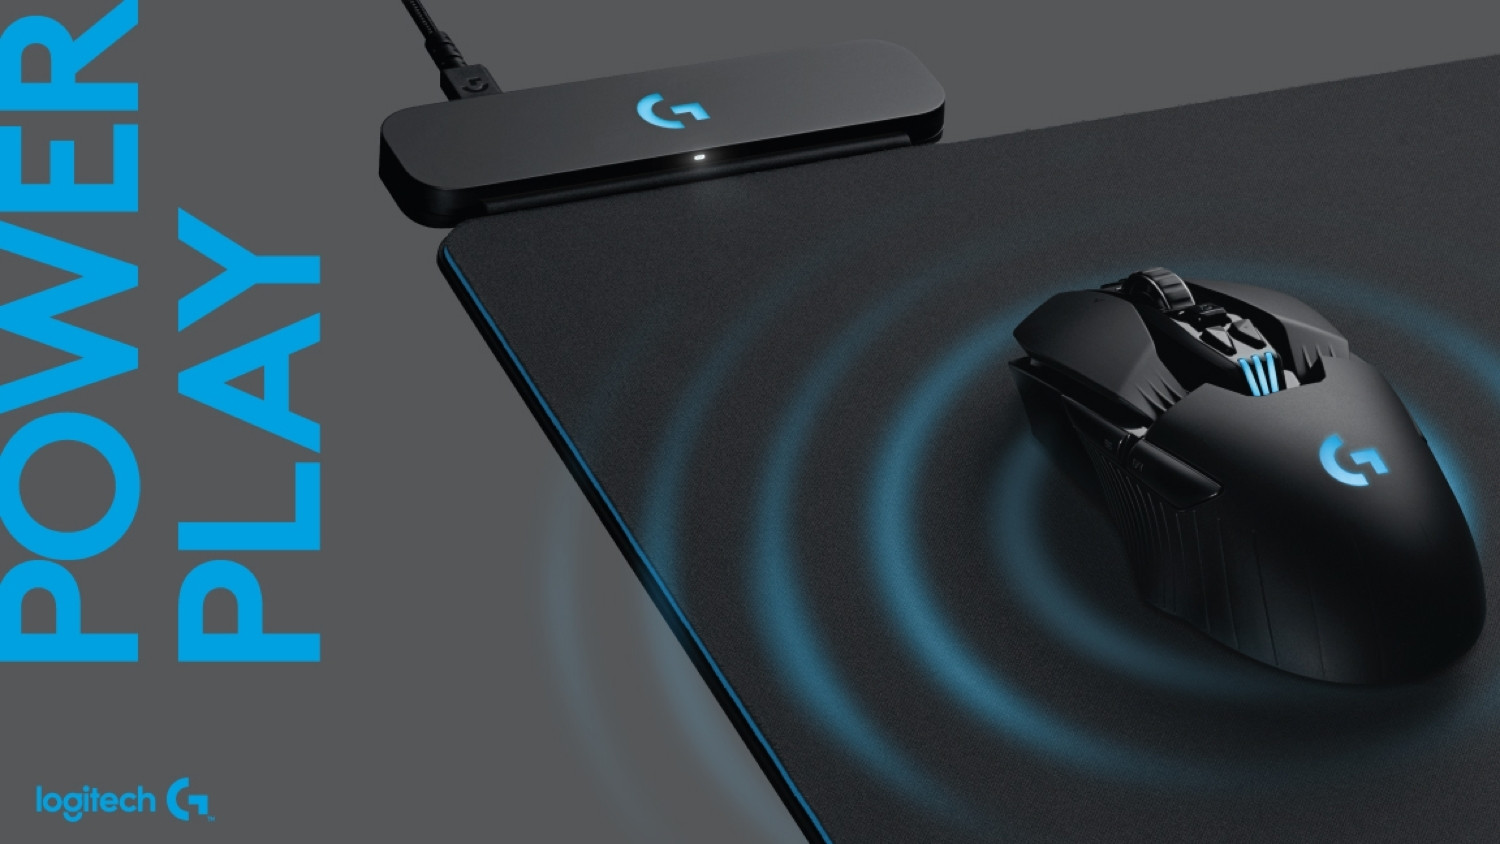 Logitech G Announces New POWERPLAY Charging System and